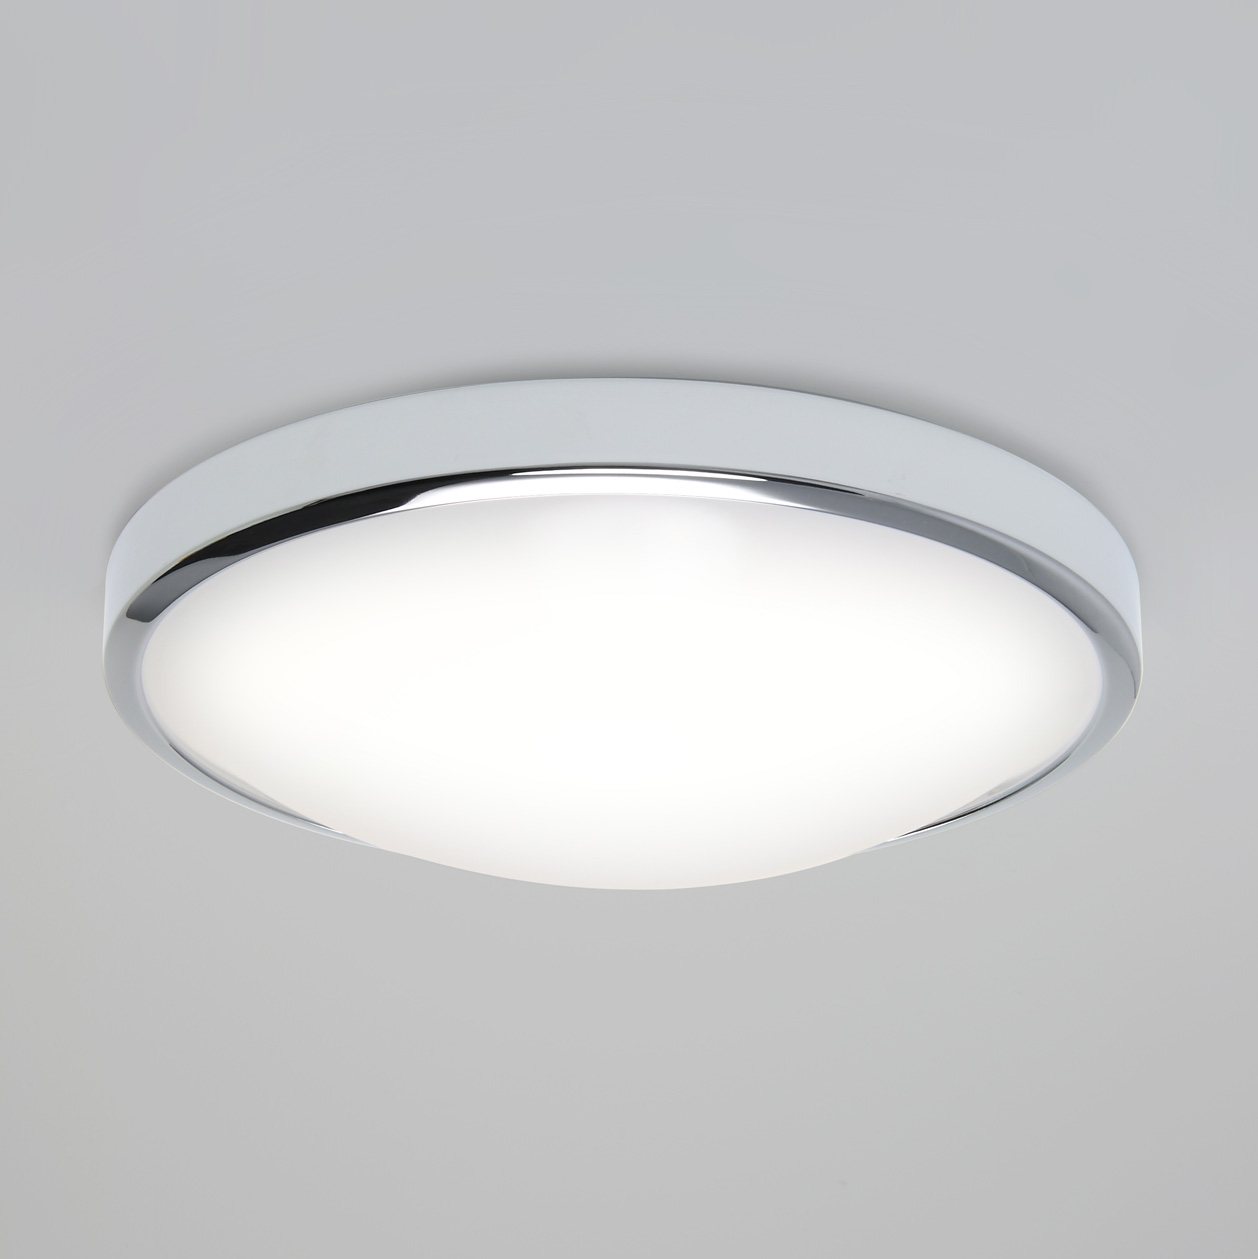 Astro Osaka 0387 bathroom  round low energy ceiling wall light 28W IP44 chrome